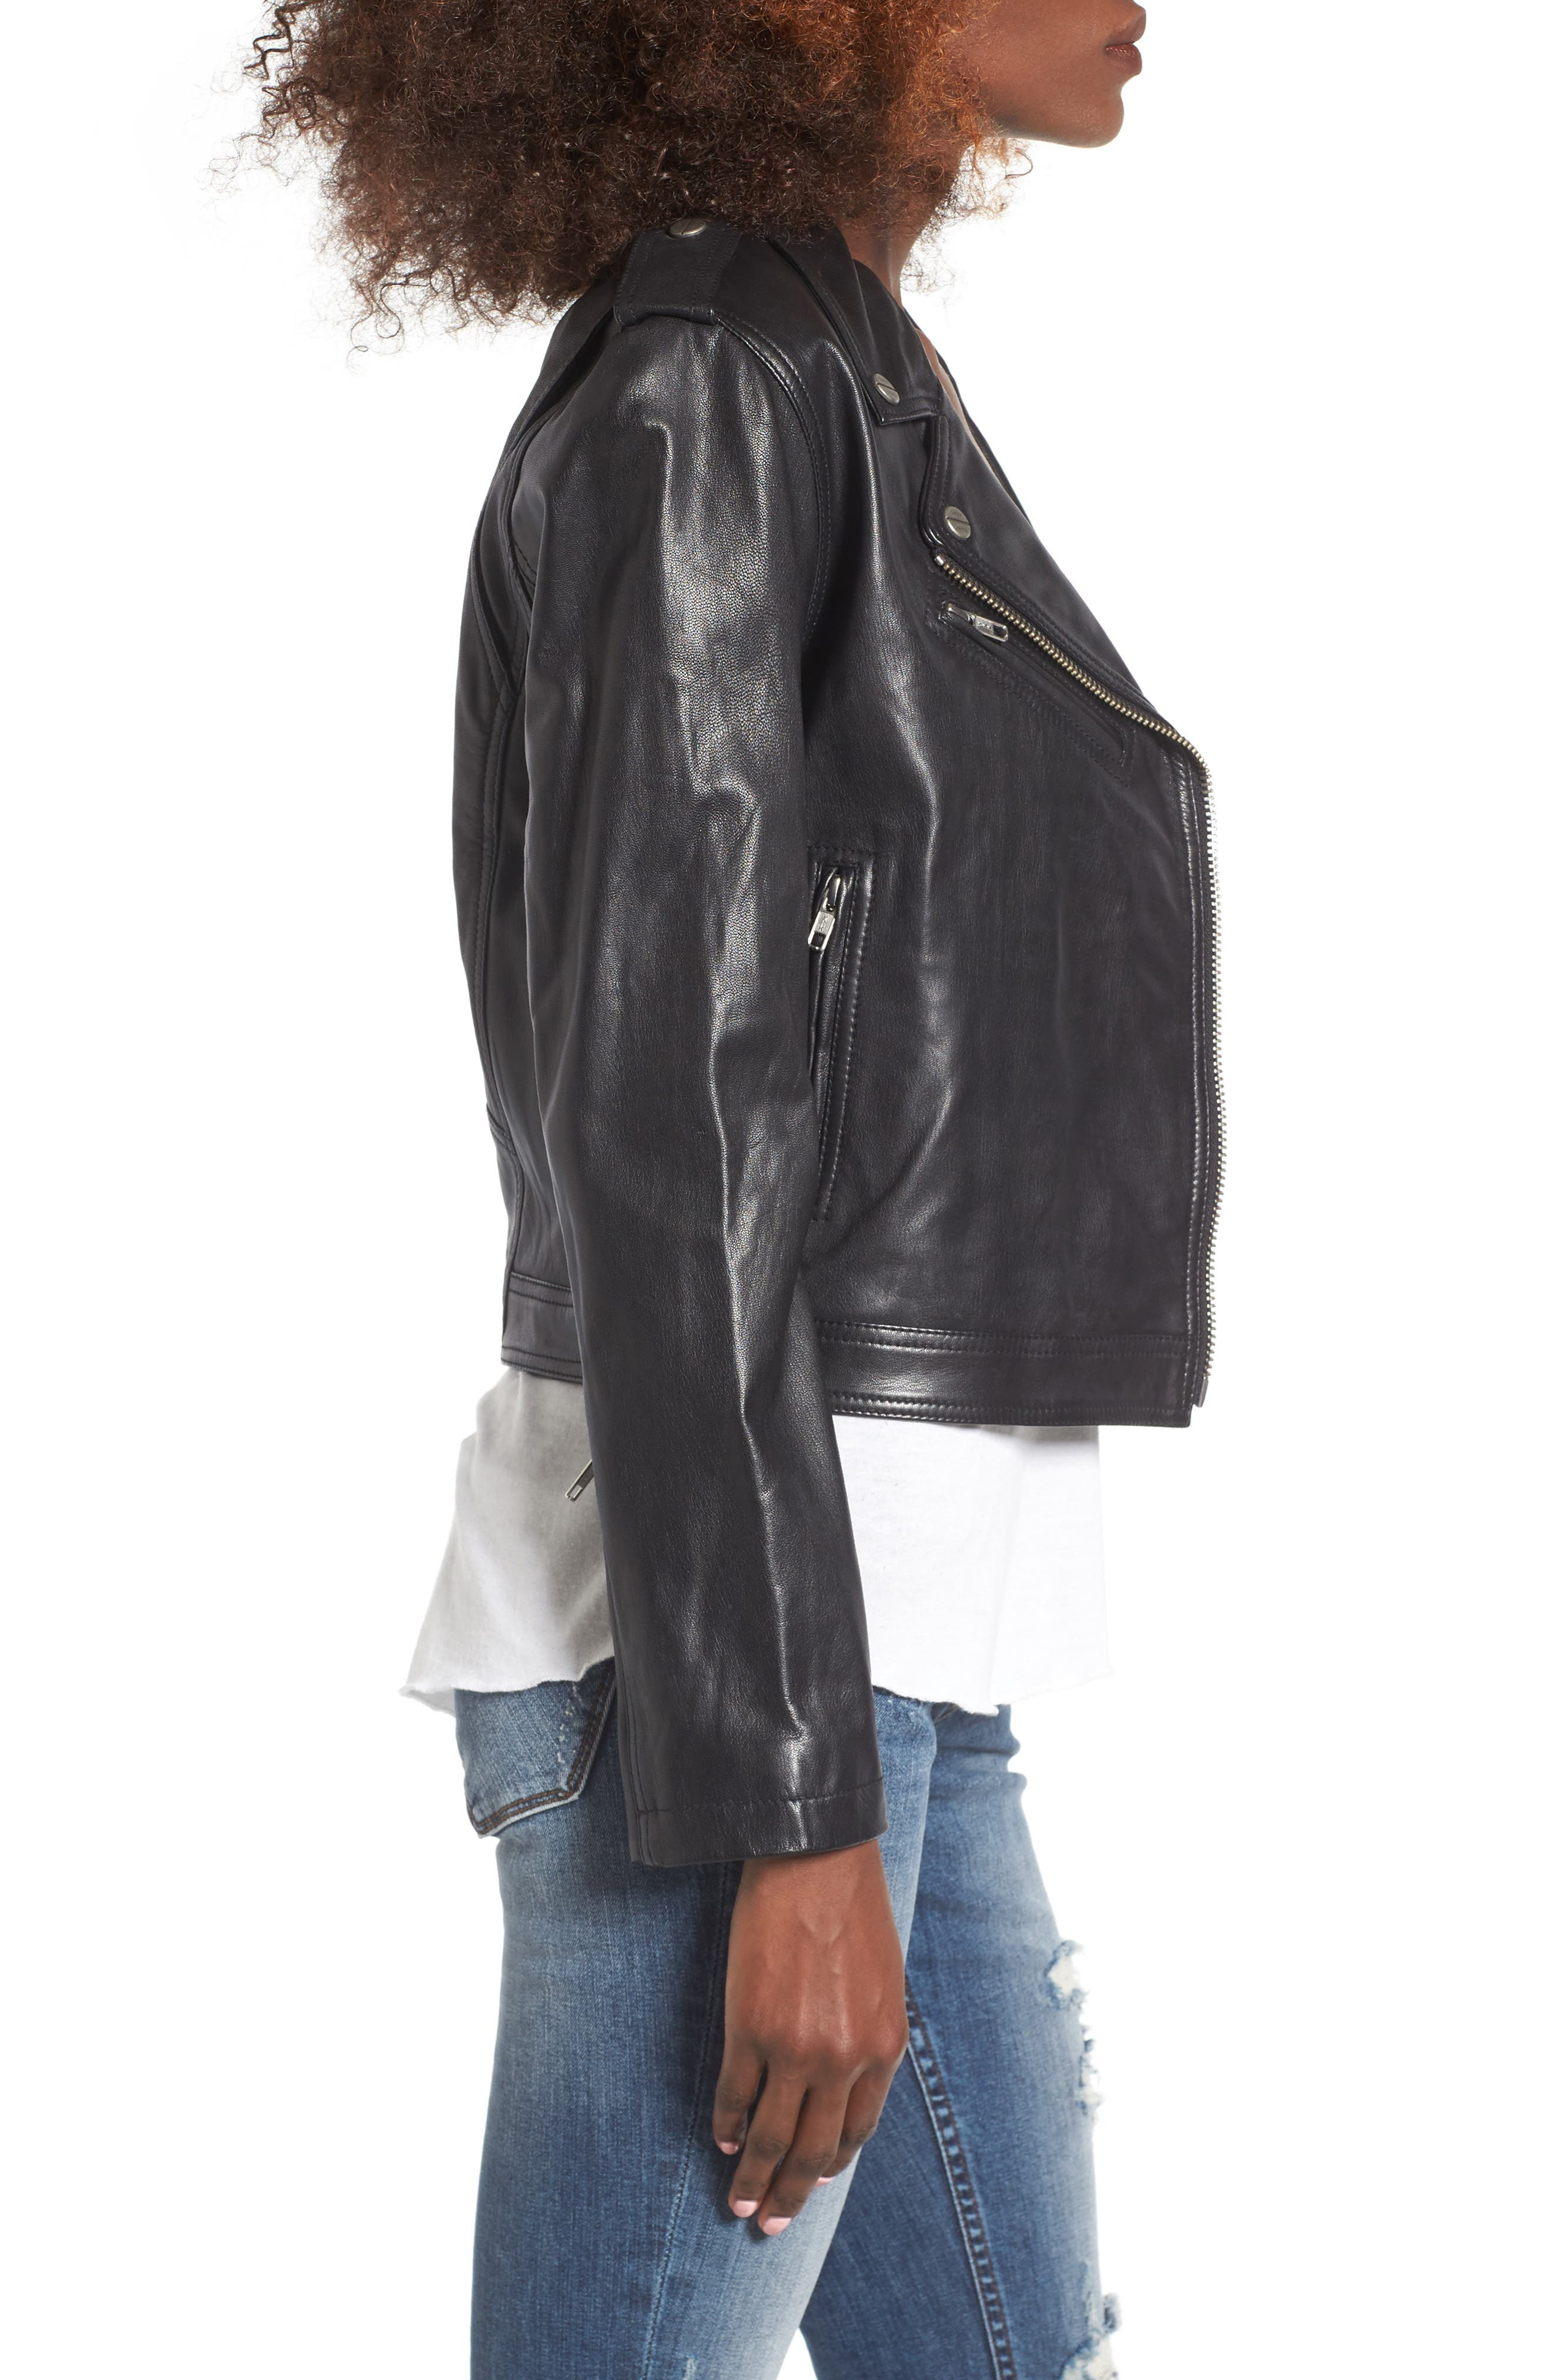 Diablo City Leather Moto Jacket,                             Alternate thumbnail 3, color,                             Black